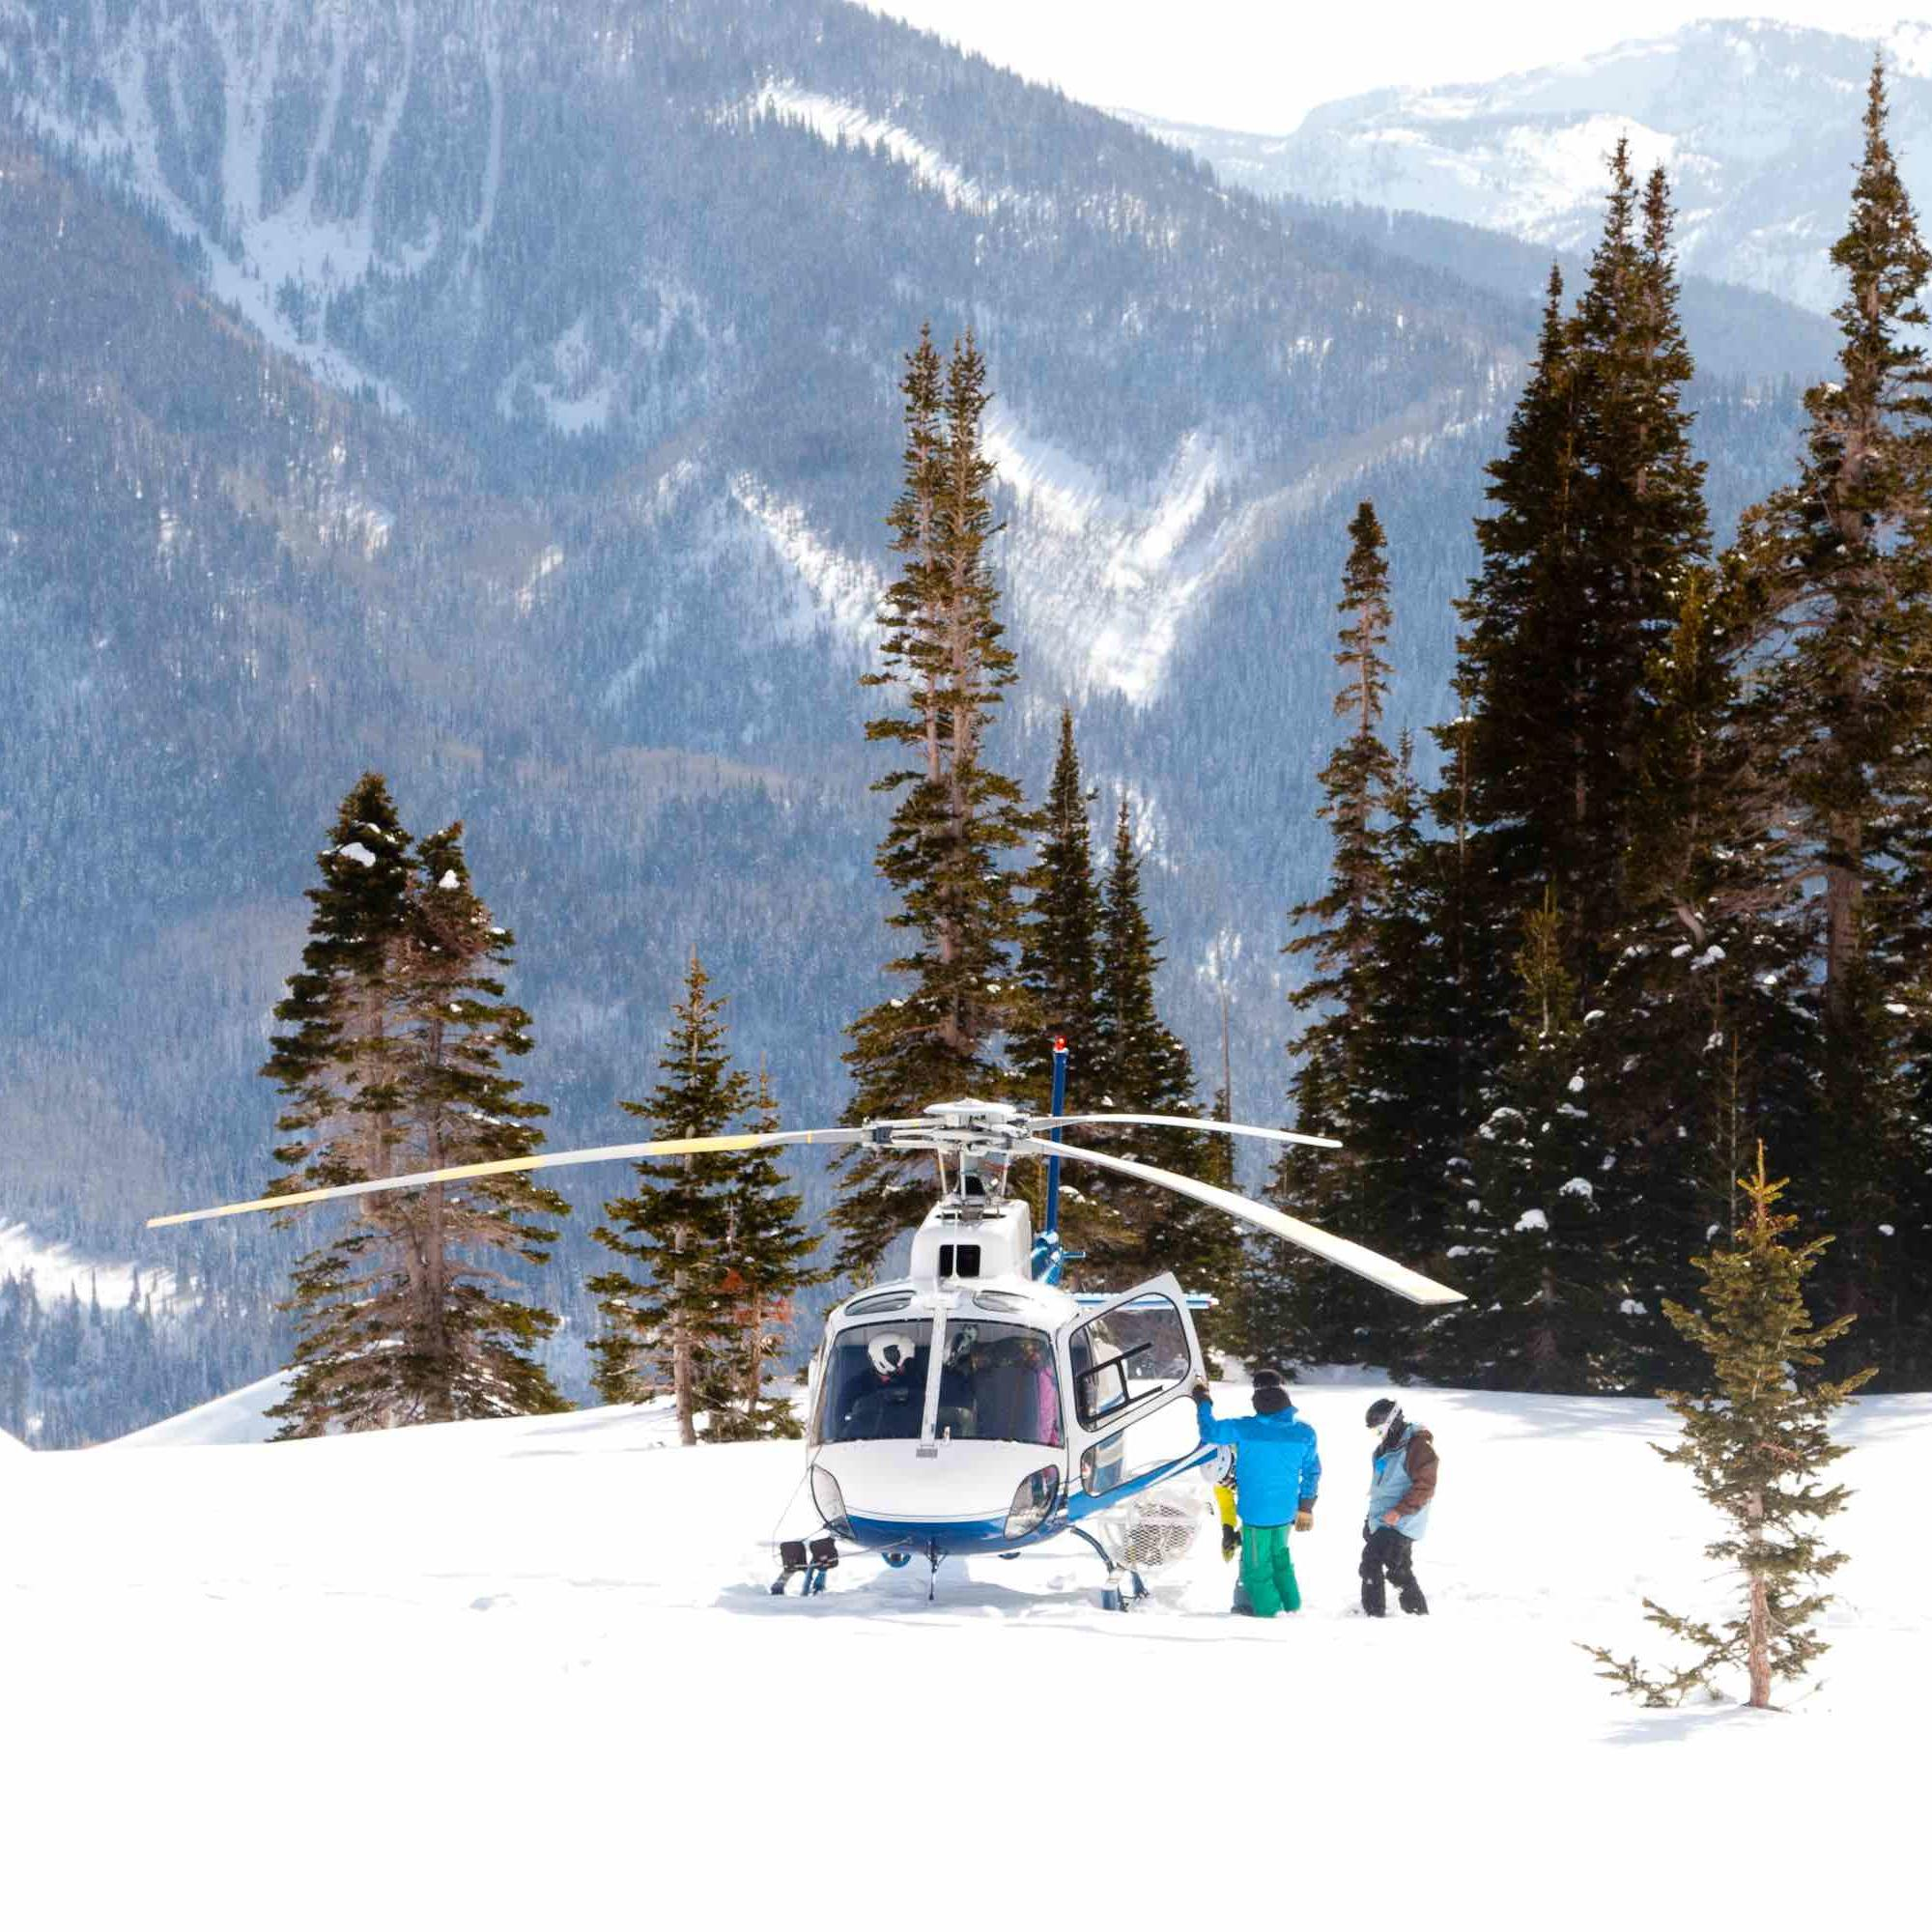 a helicopter landing in snow